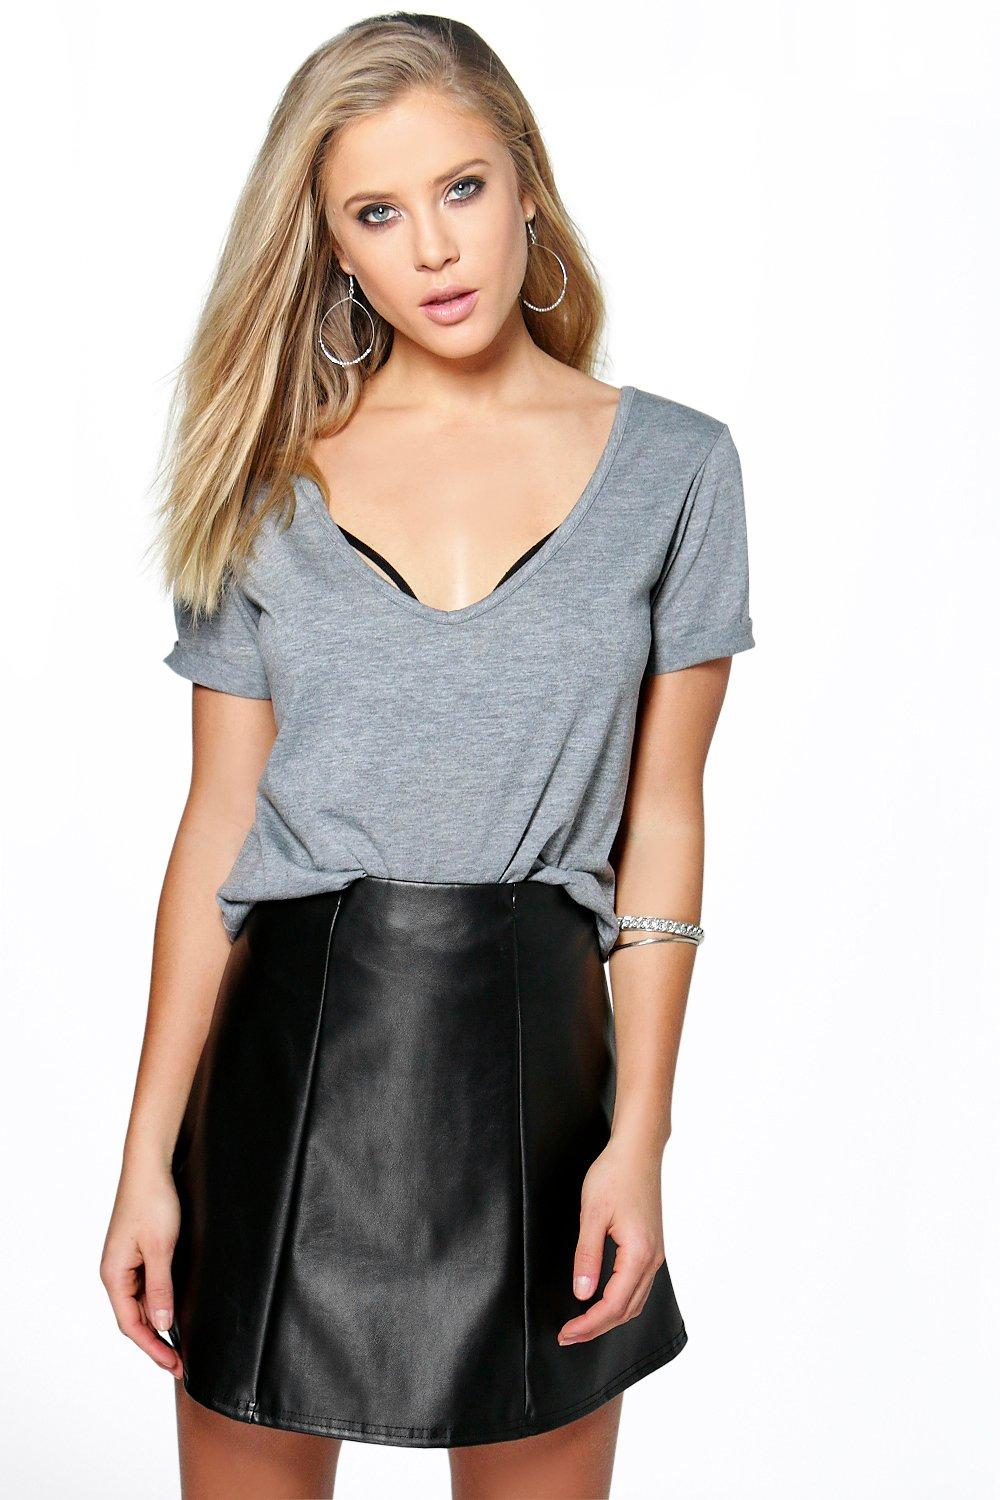 Freya Leather Look Panelled A Line Skirt